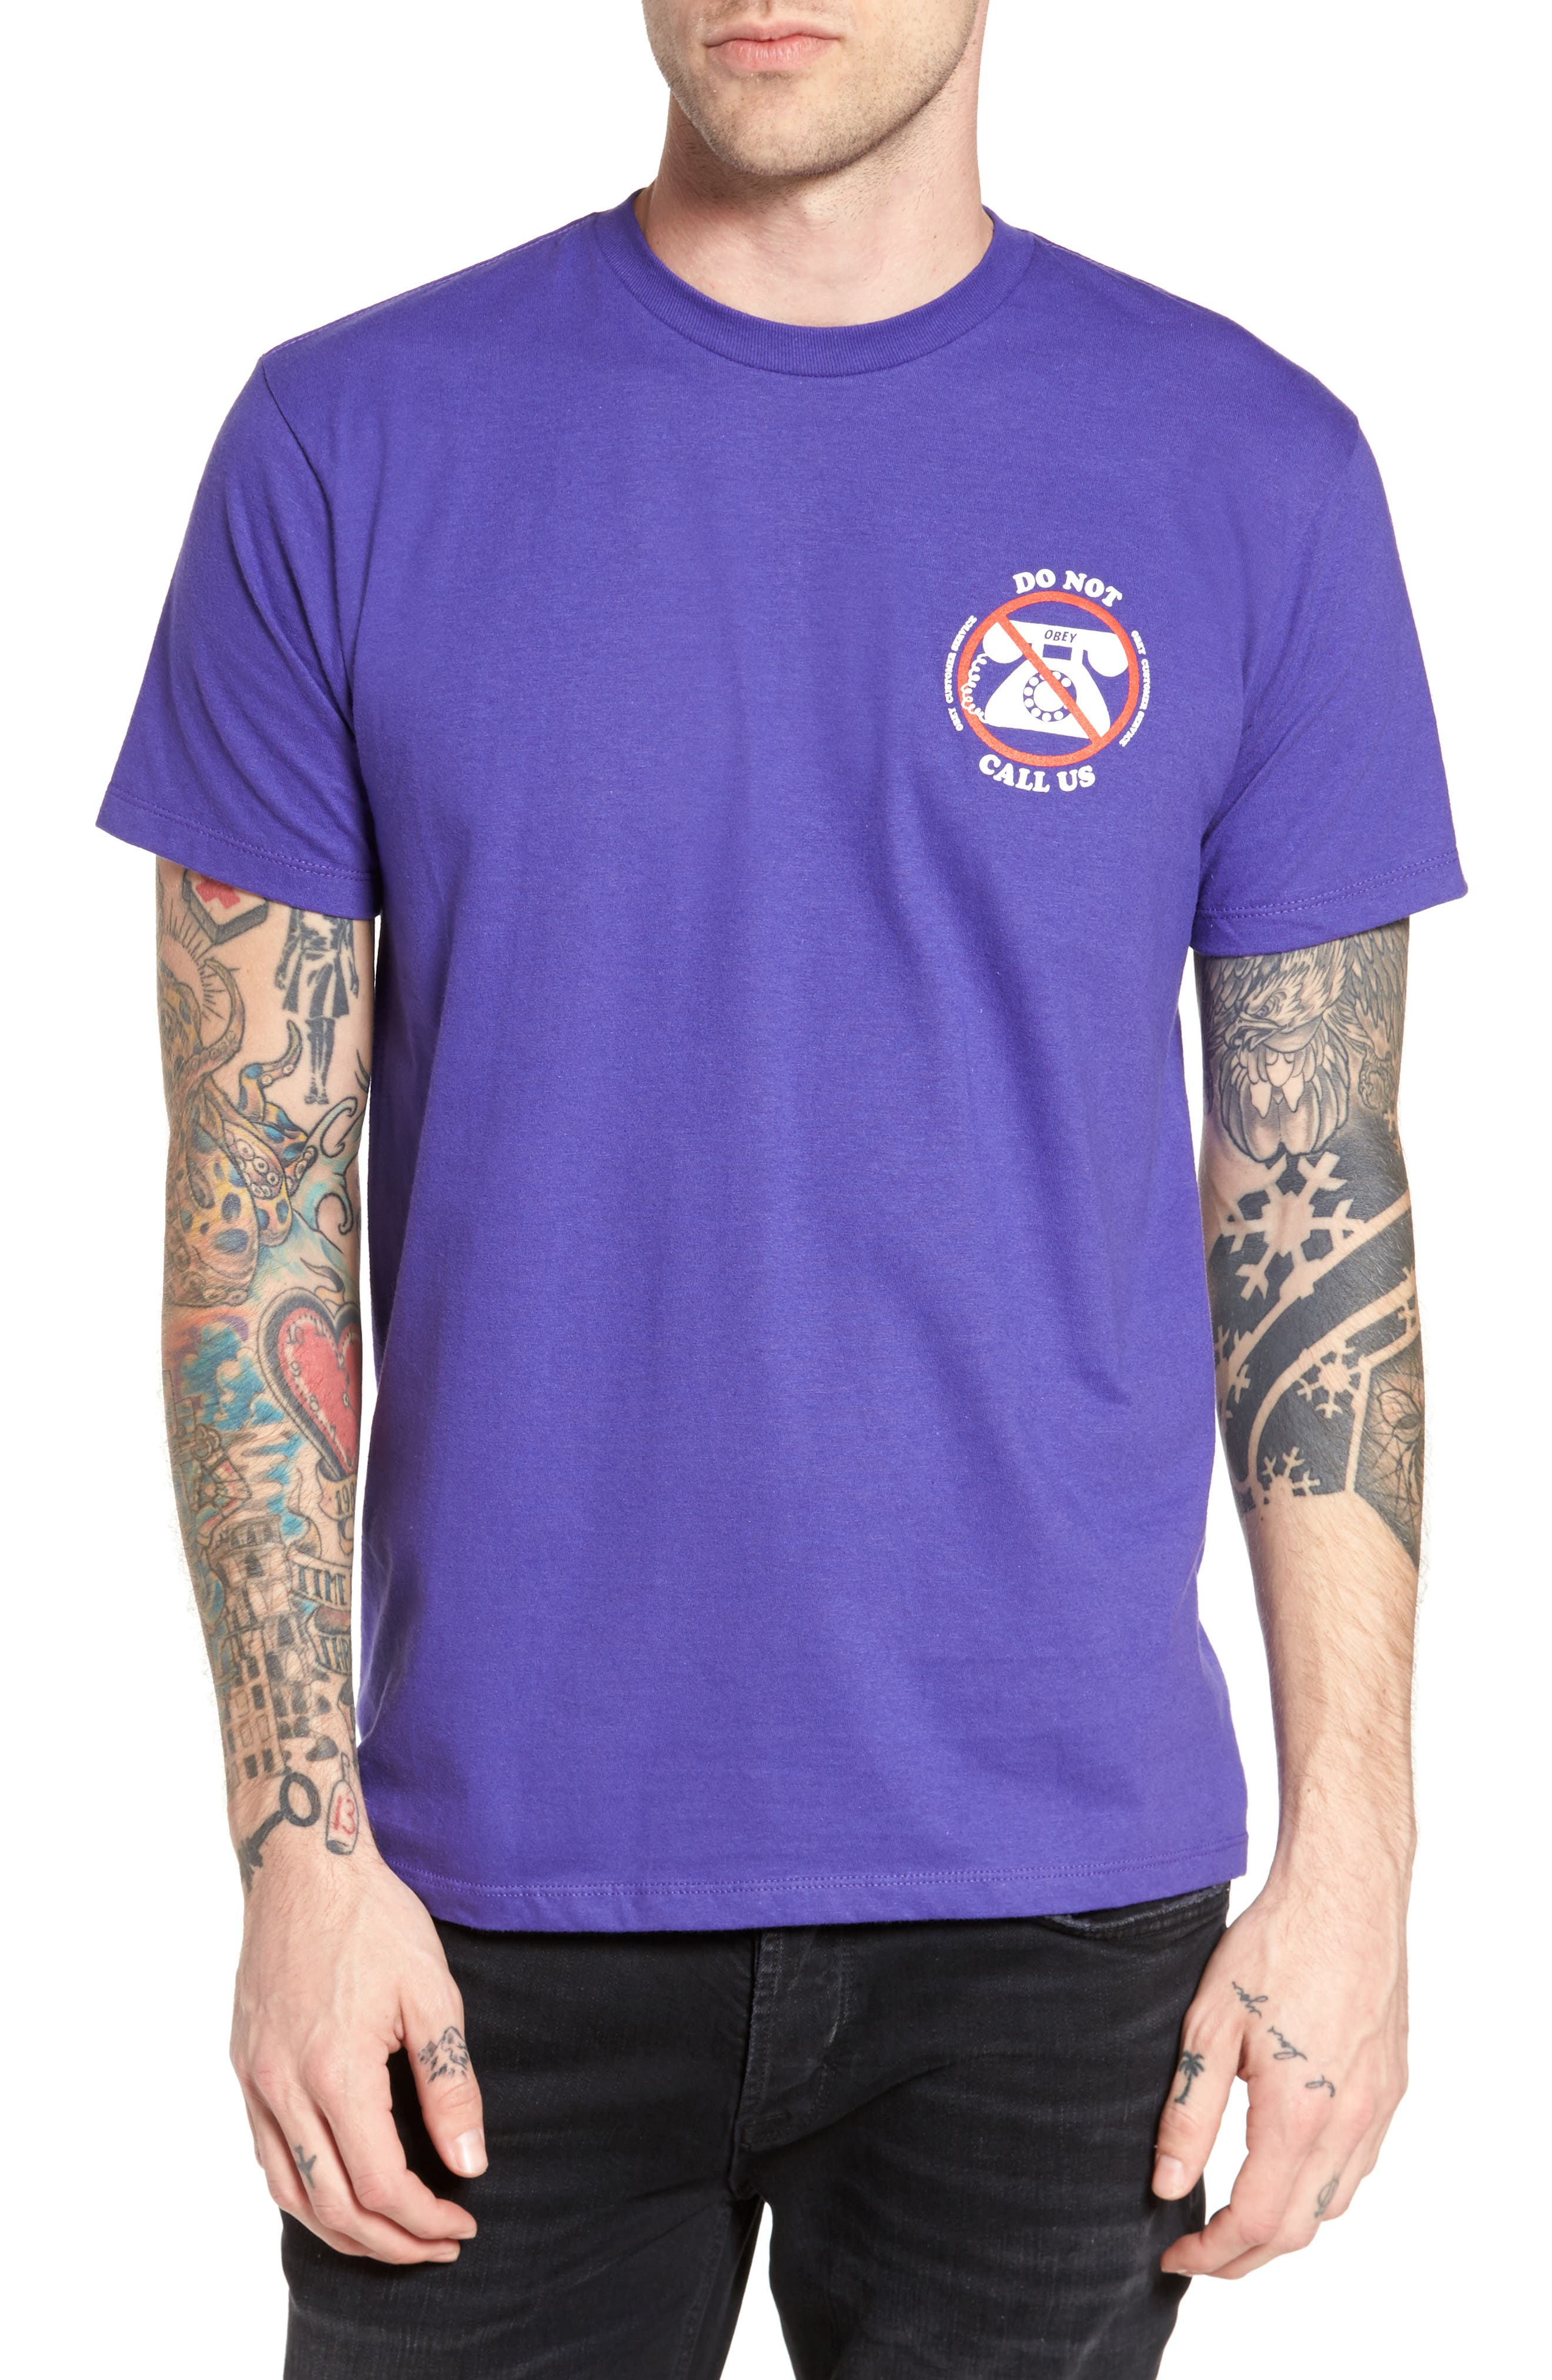 Alternate Image 1 Selected - Obey Customer Service Premium Graphic T-Shirt